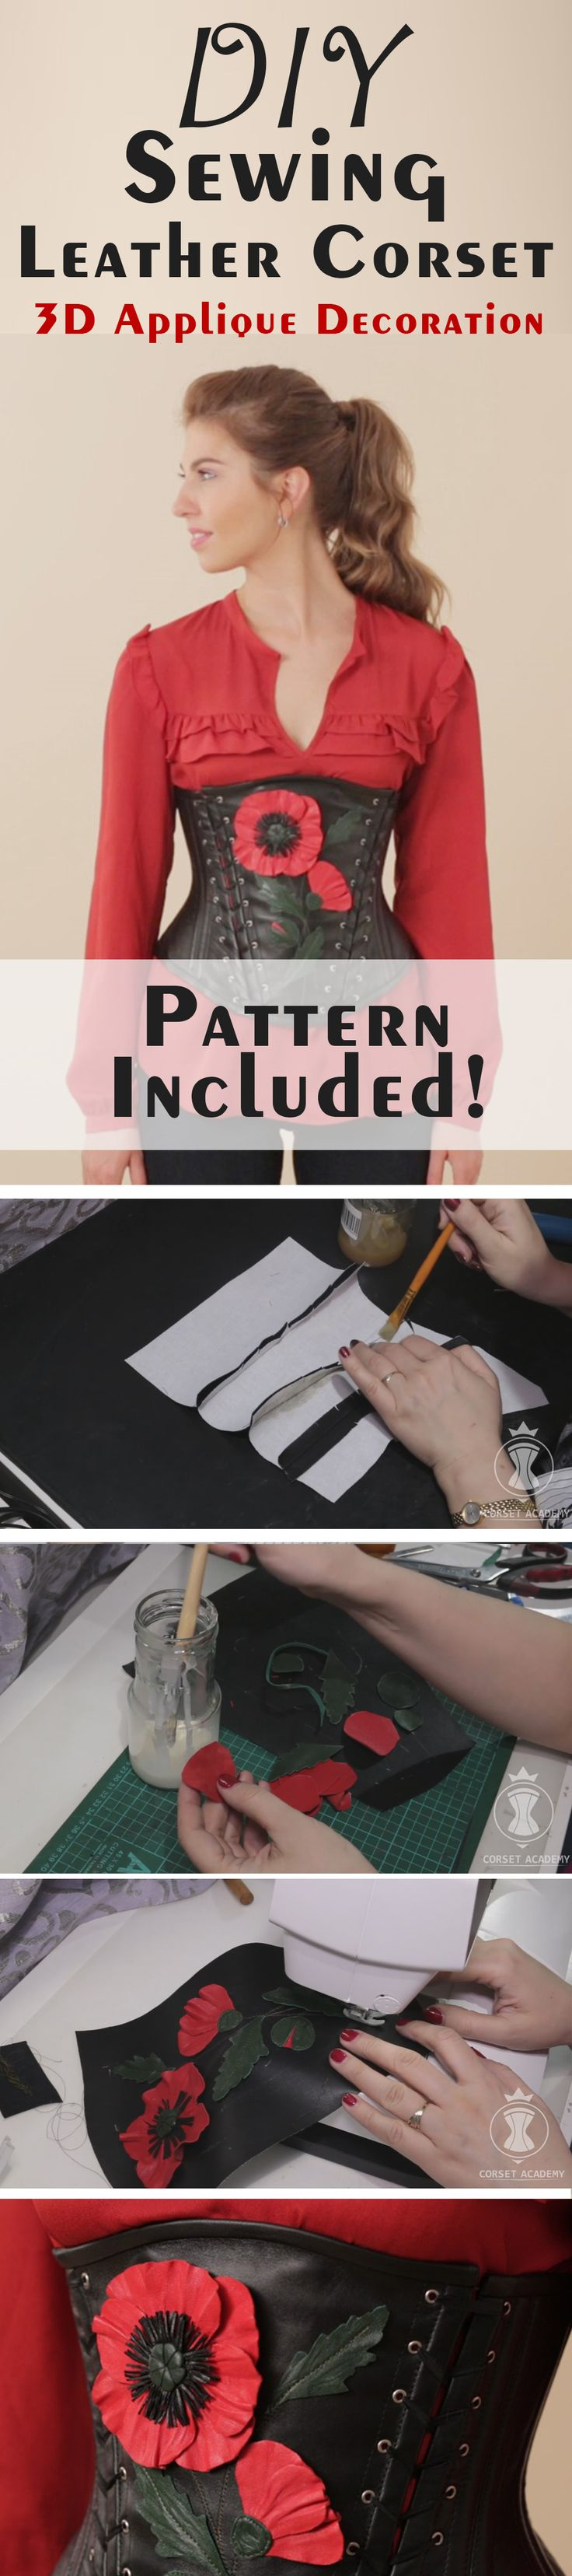 Sewing leather corset. 3D Applique decoration. Sewing pattern included. Corset making tutorials by Corset Academy. DIY underbust corset